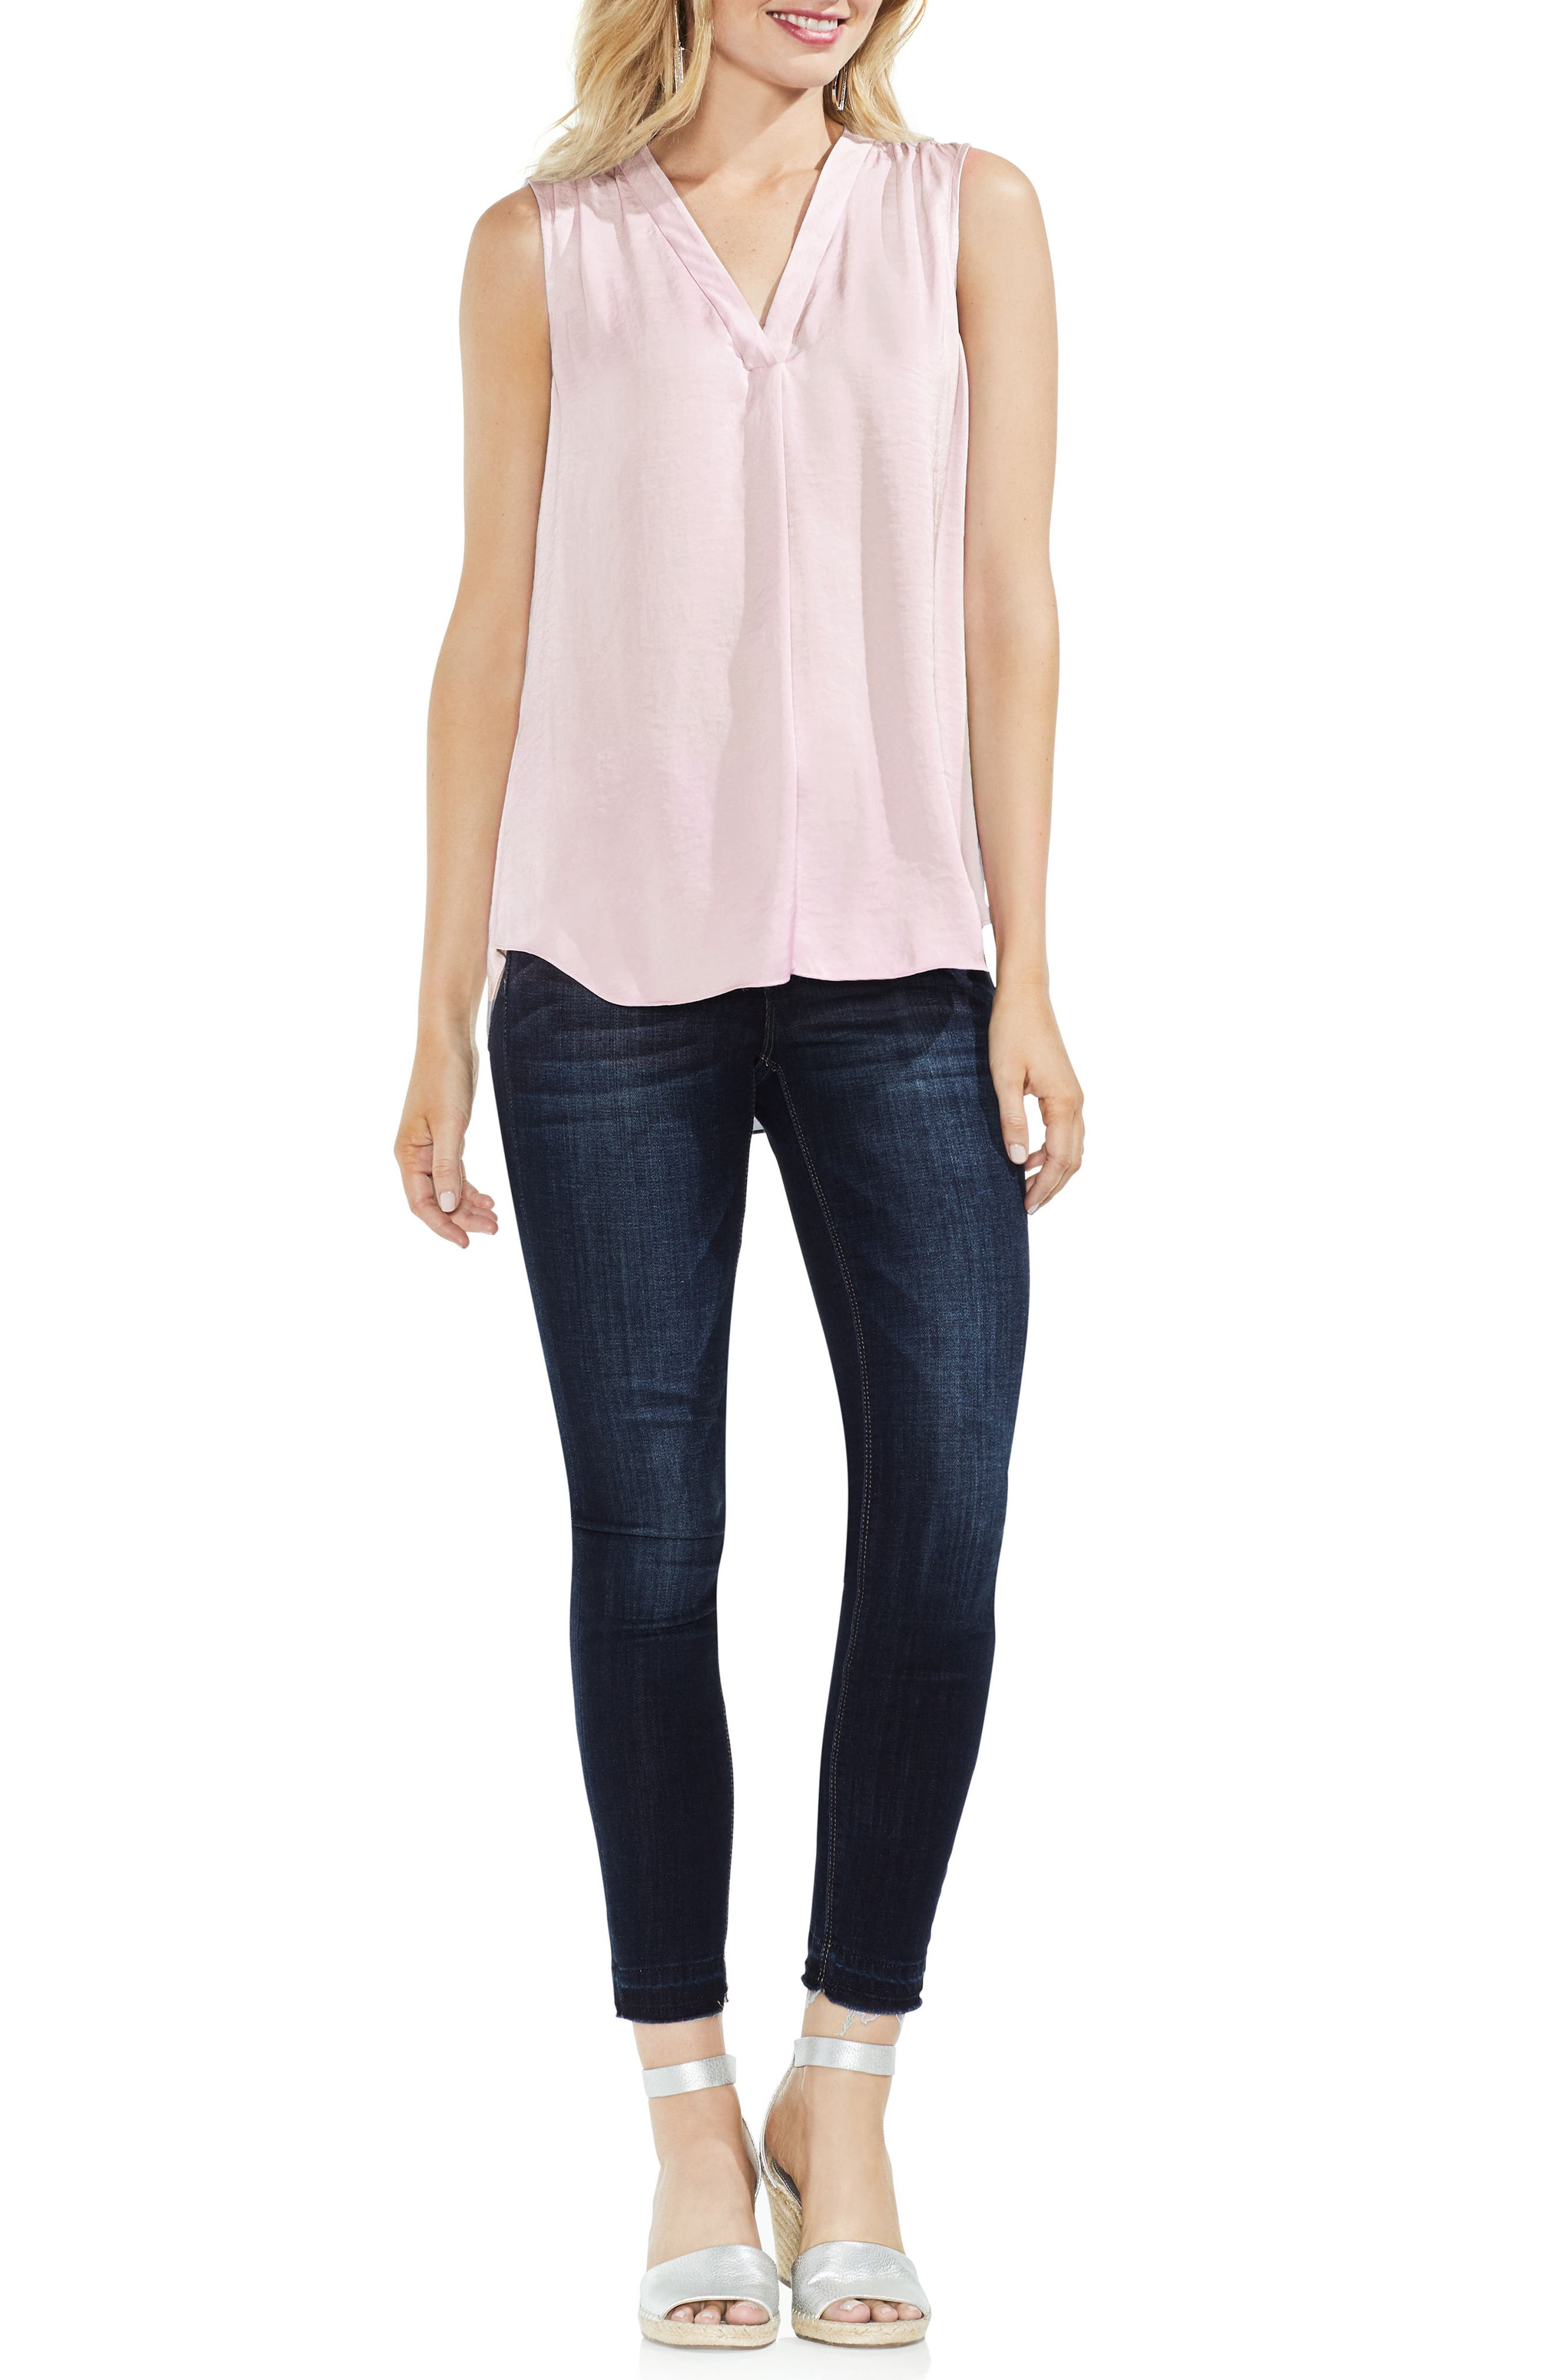 VINCE CAMUTO, Rumpled Satin Blouse, Alternate thumbnail 5, color, PINK BLISS